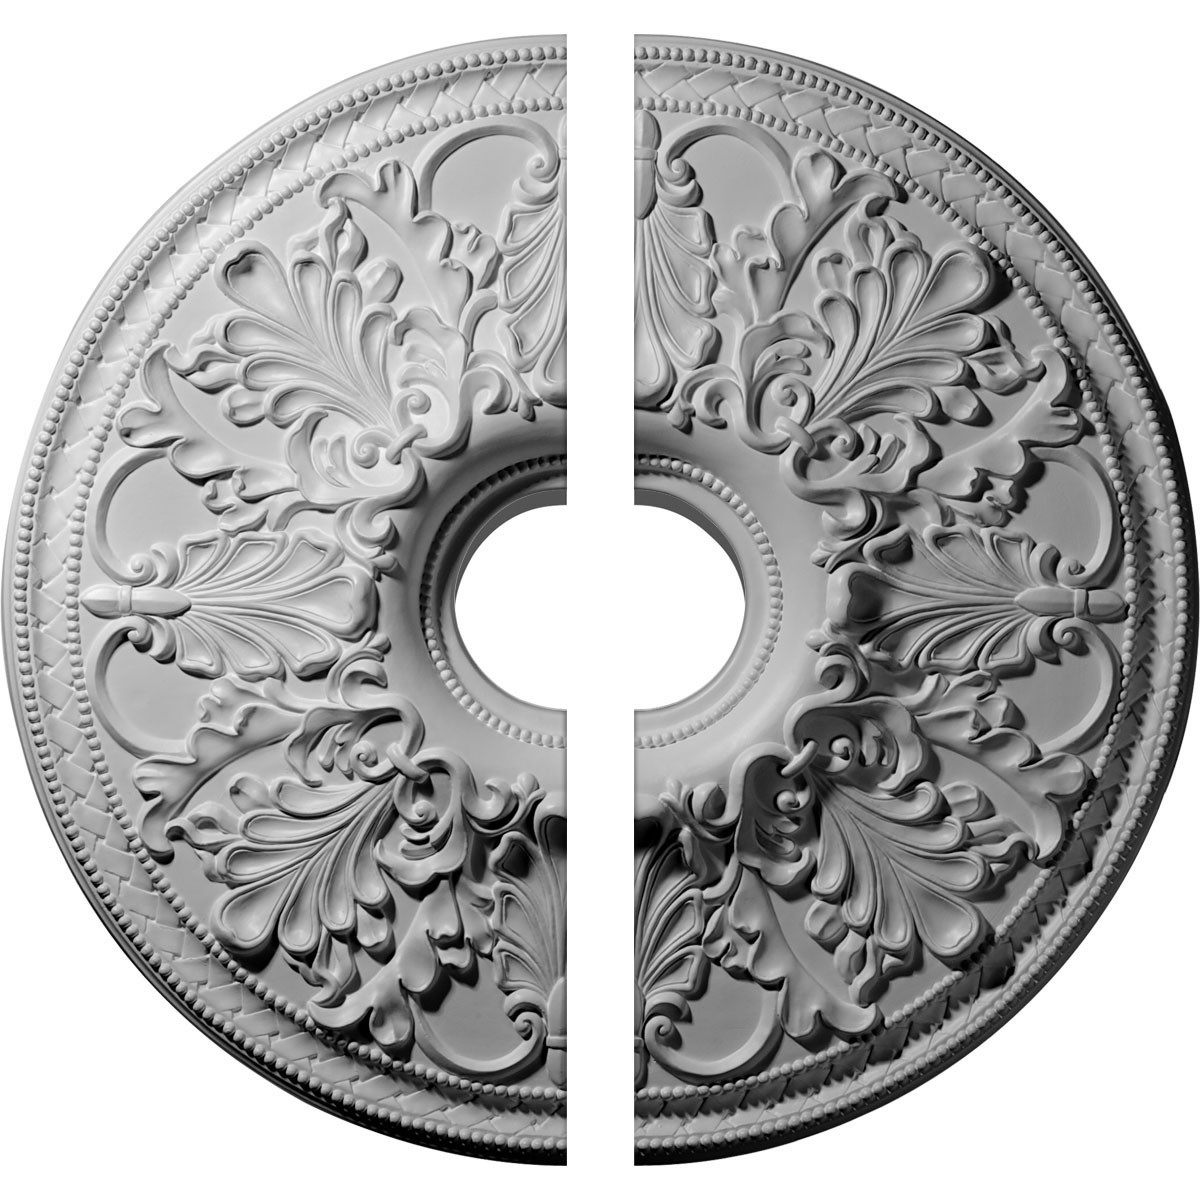 """EM-CM23AS2 - 23 7/8""""OD x 4""""ID x 2 1/8""""P Ashley Ceiling Medallion, Two Piece (Fits Canopies up to 4 3/4"""")"""